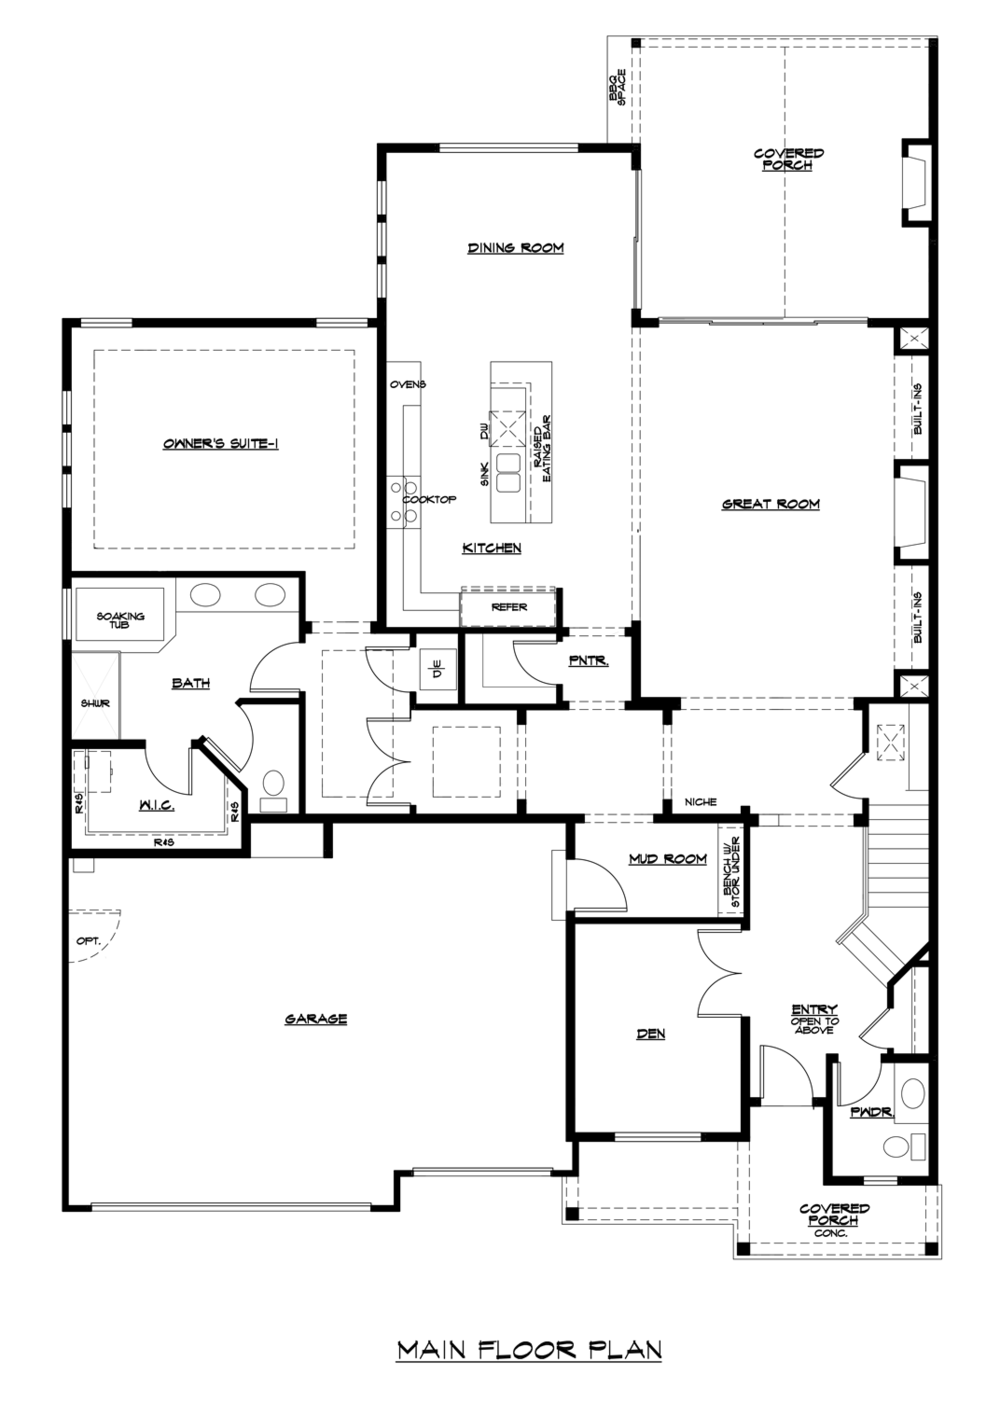 SBG_Homes-LakeKathleen_60-main_floor-drawing.png